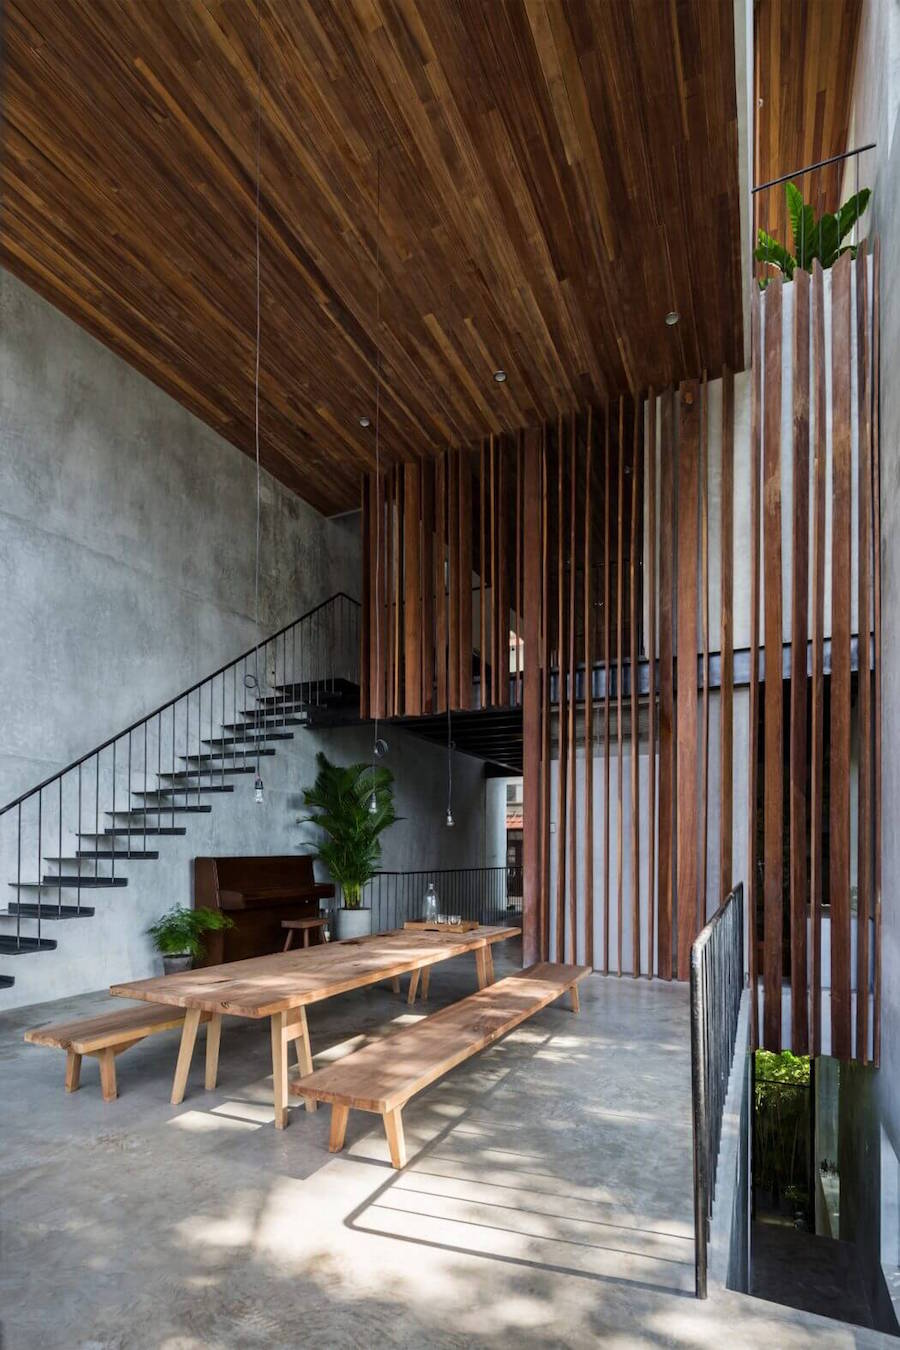 thong-house-nishizawaarchitects-2